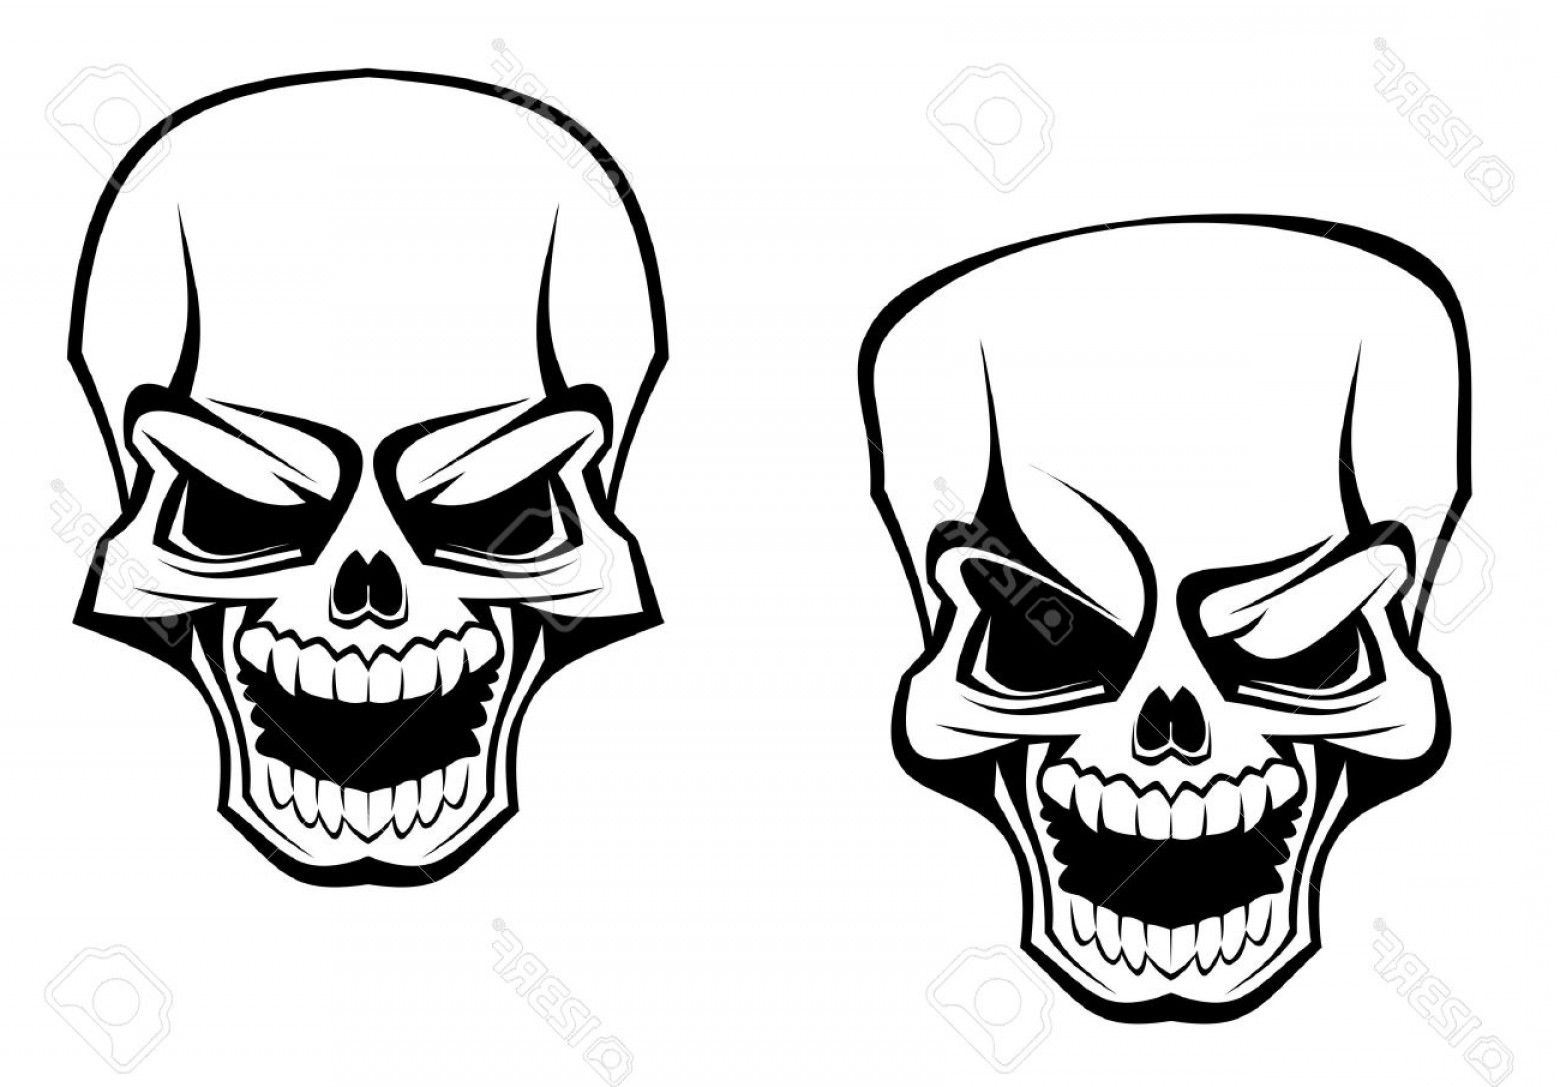 Cool Skull Vector: Photodanger Skull As A Warning Or Evil Concept